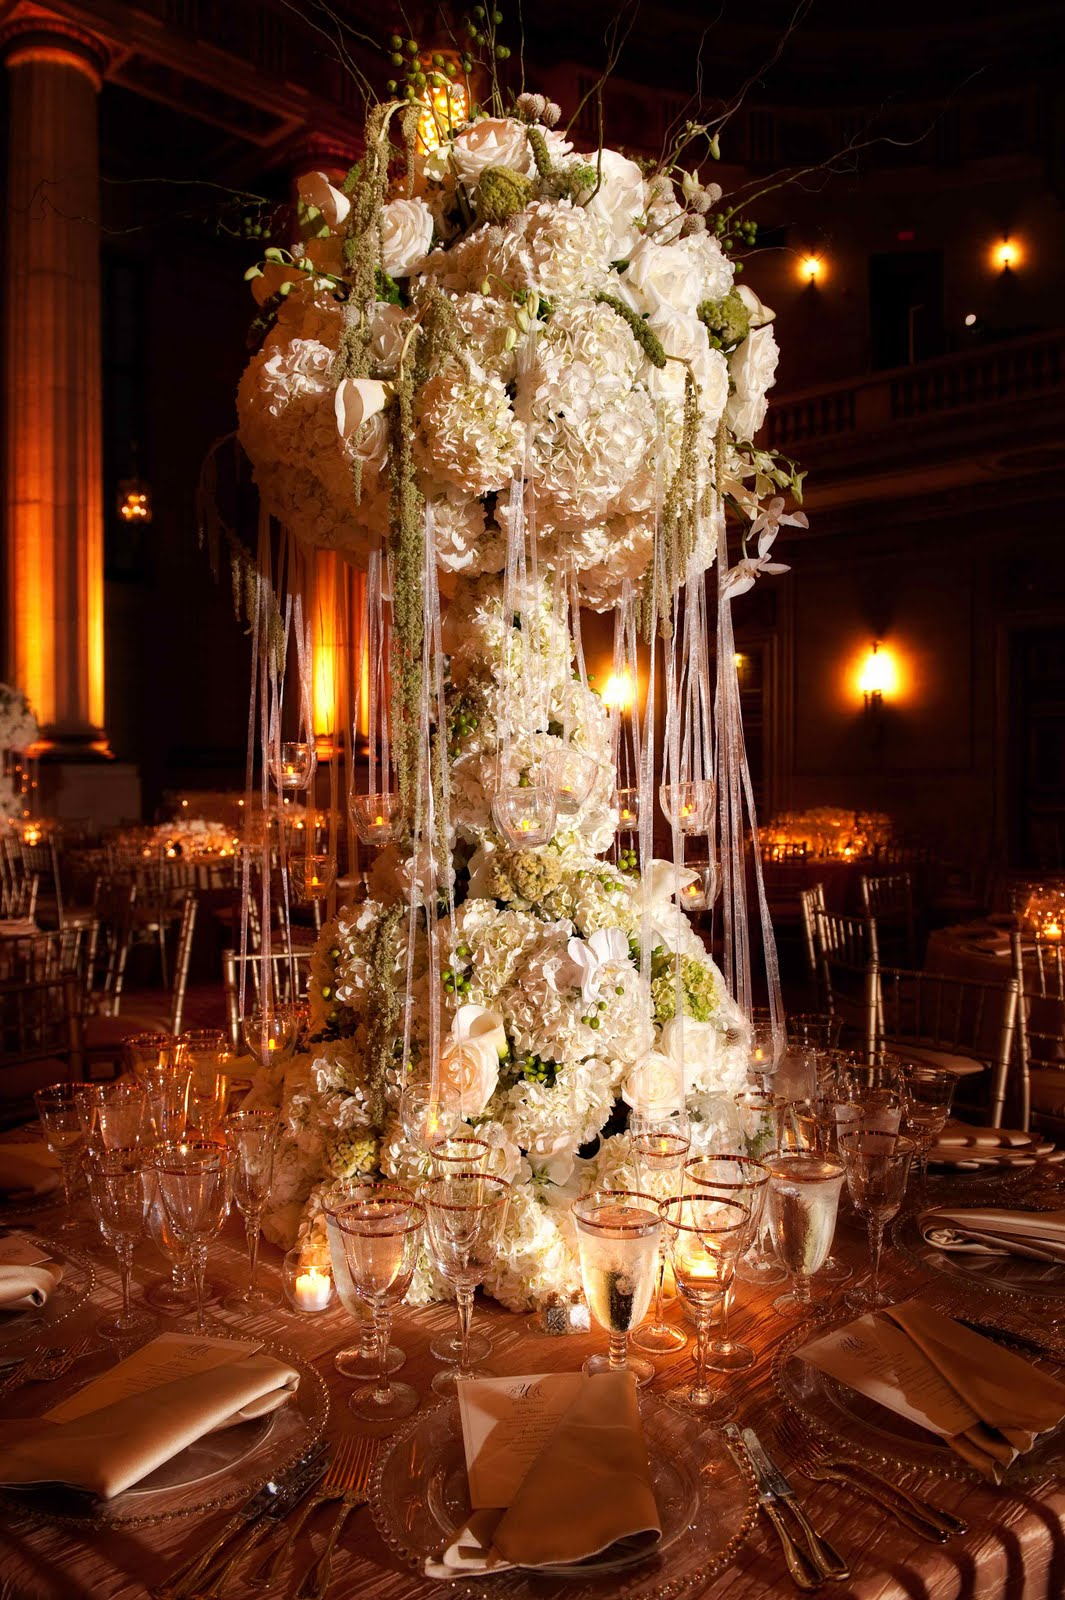 fondant cake, centerpiece ideas for weddings wedding centrepiece ideas